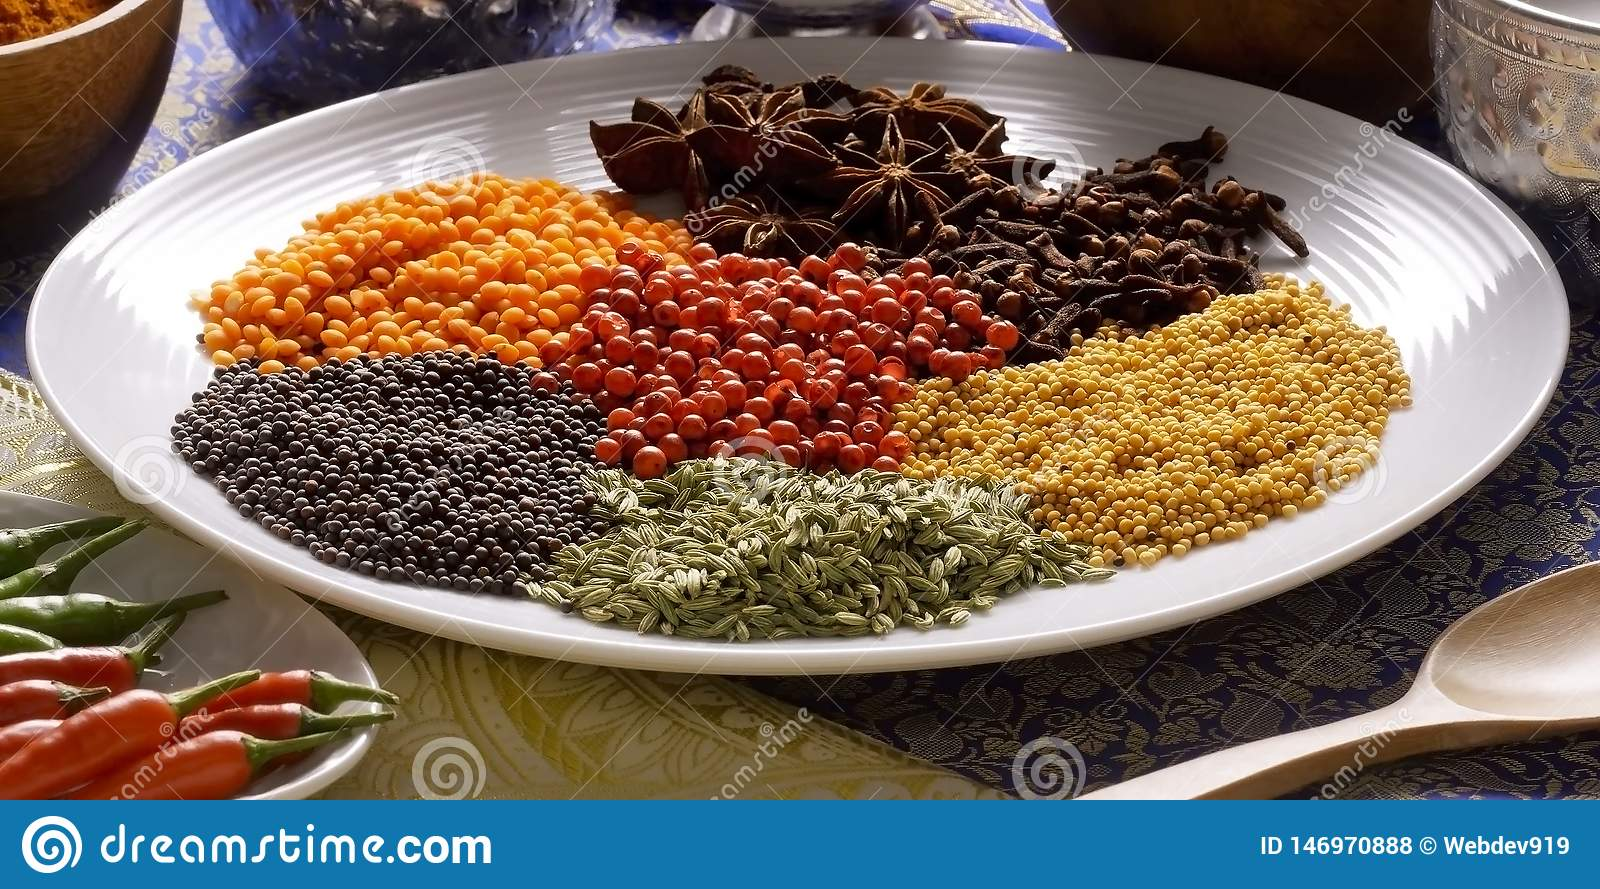 Spicies on the plate in India, grain, spicy seed